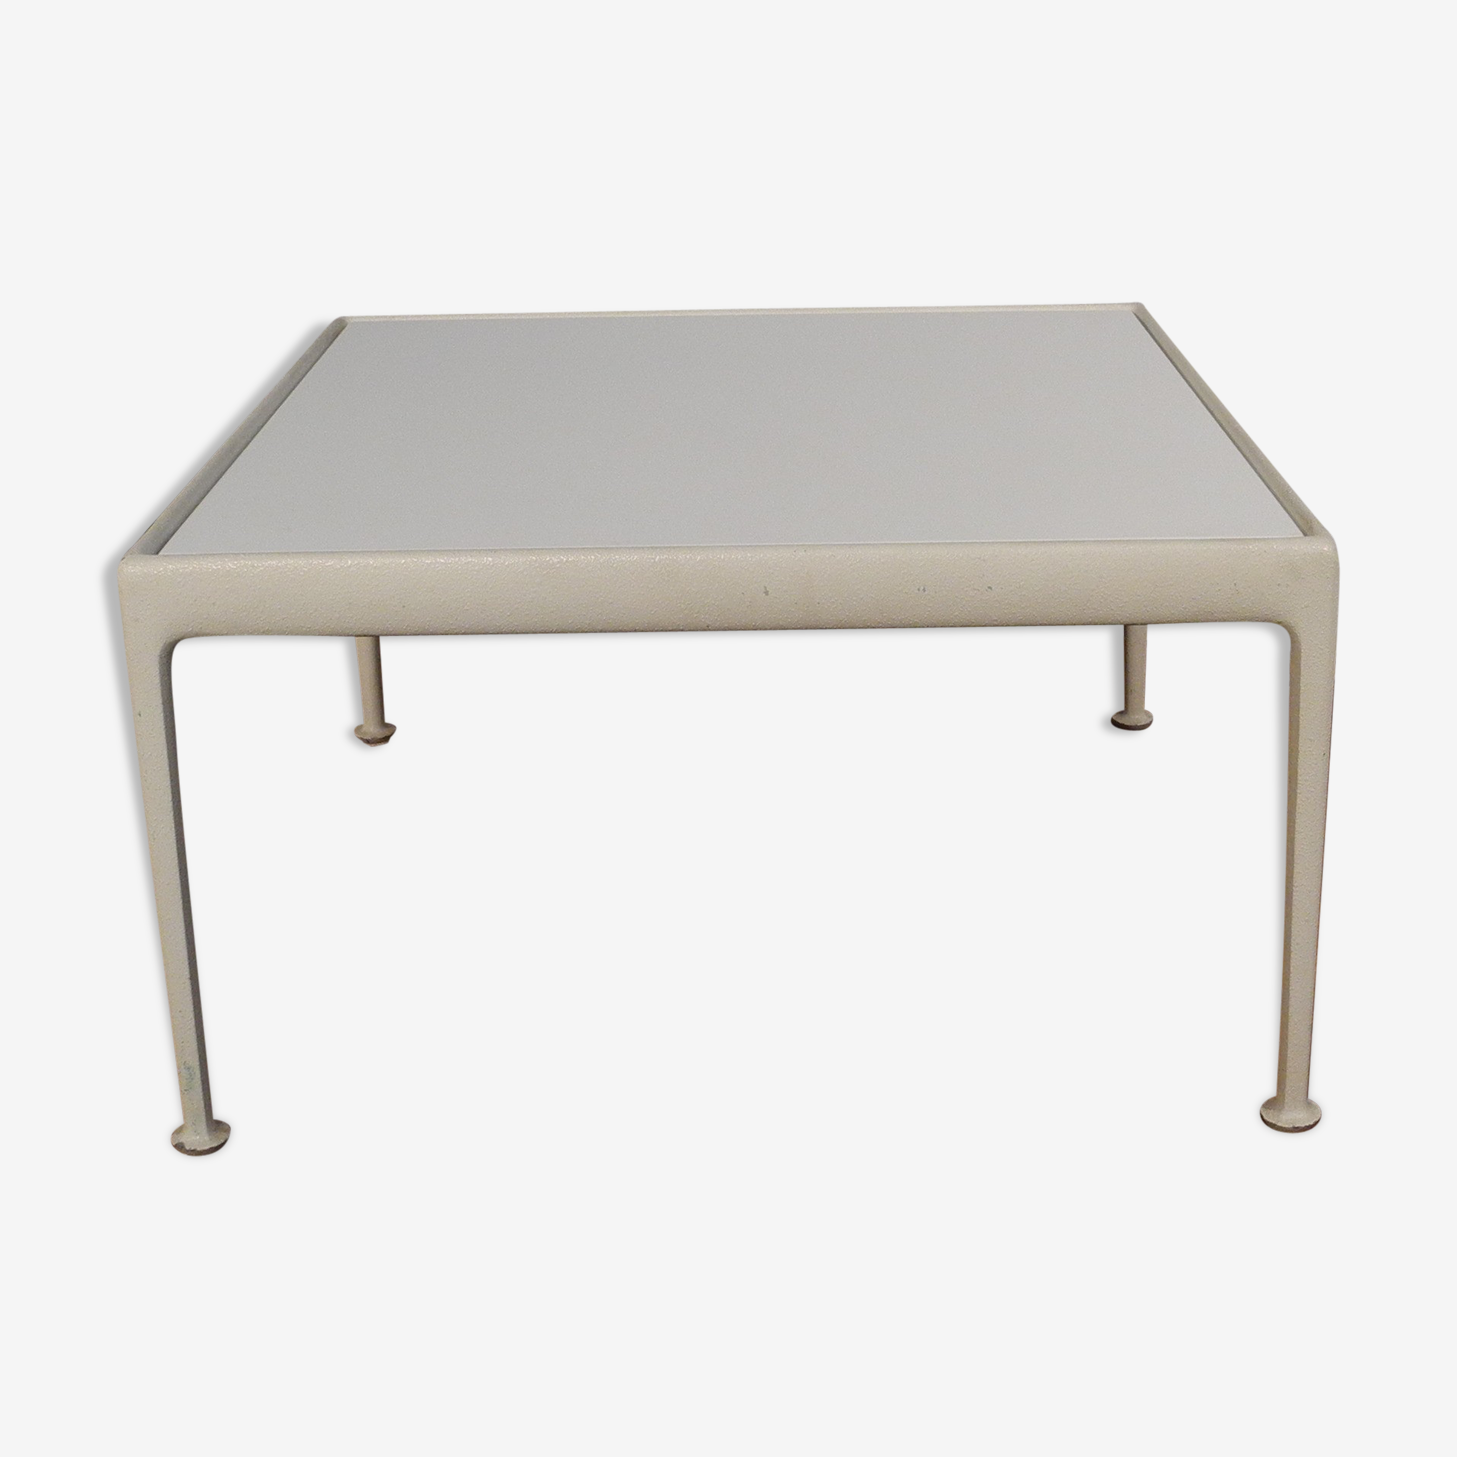 Coffee table by Knüll Schuktz in aluminum years 1960